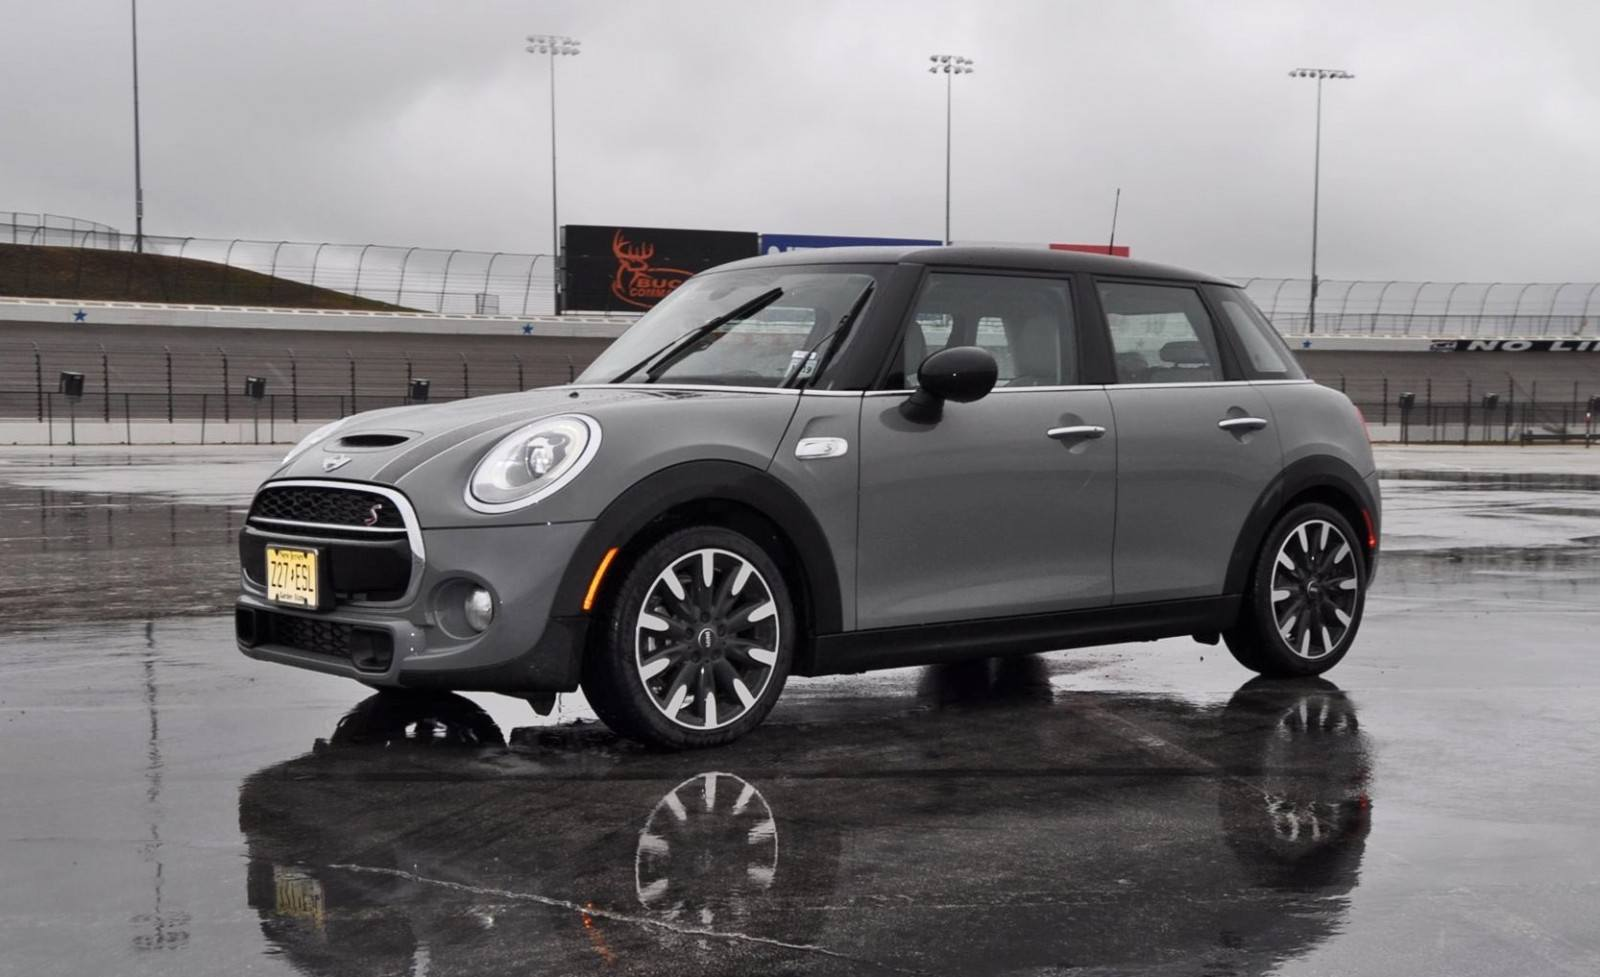 2015 mini cooper s hardtop 4 door review. Black Bedroom Furniture Sets. Home Design Ideas